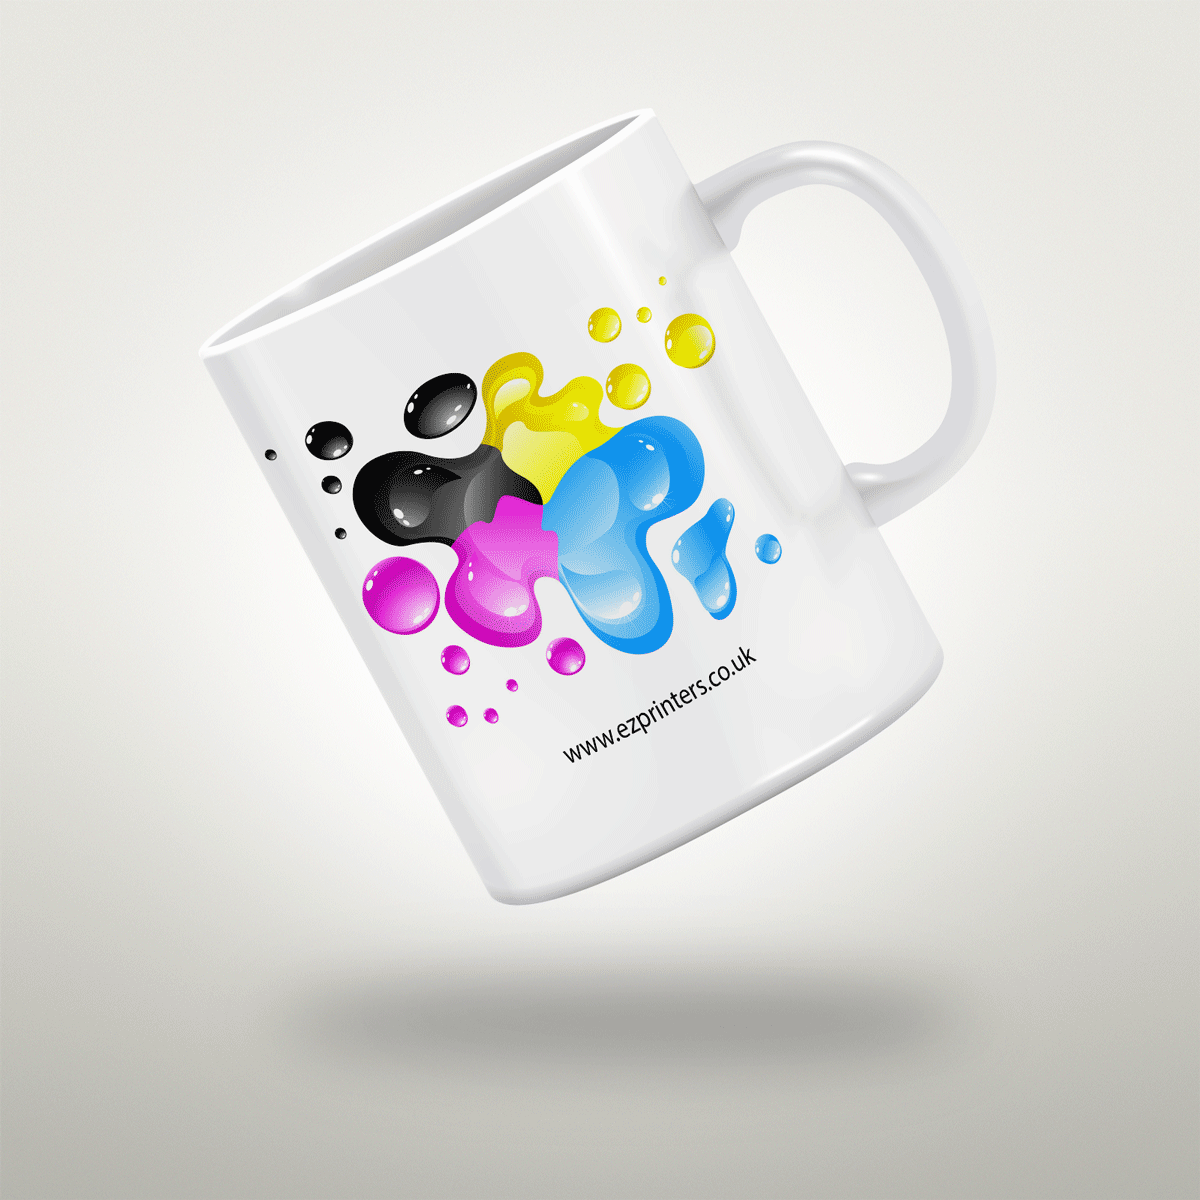 Personalised mugs custom mugs design and print ez printers for Cheap t shirt printing next day delivery